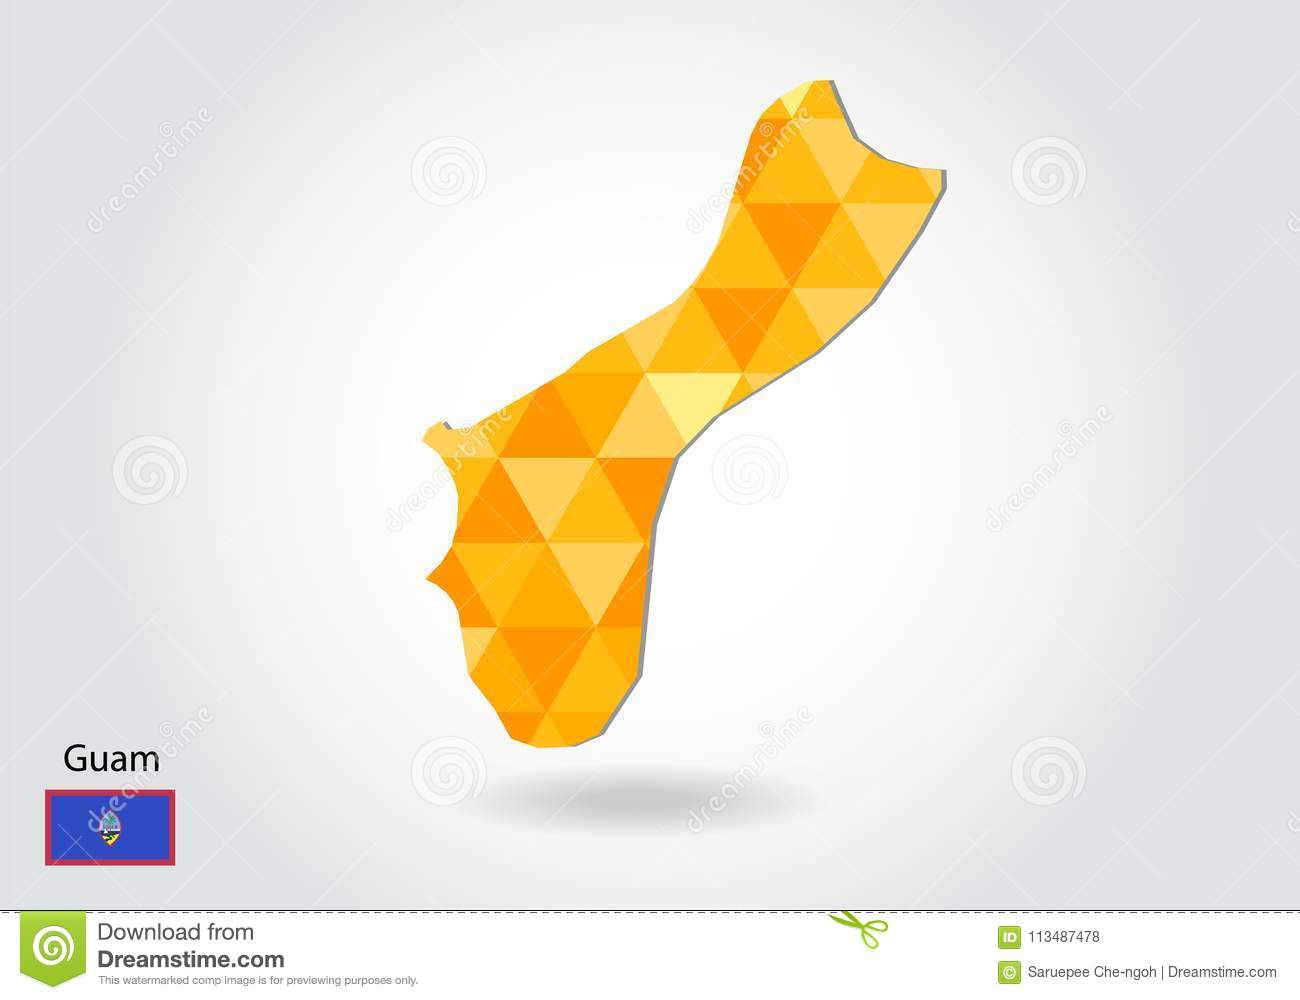 Geometric polygonal style vector map of guam. Low poly map of guam.